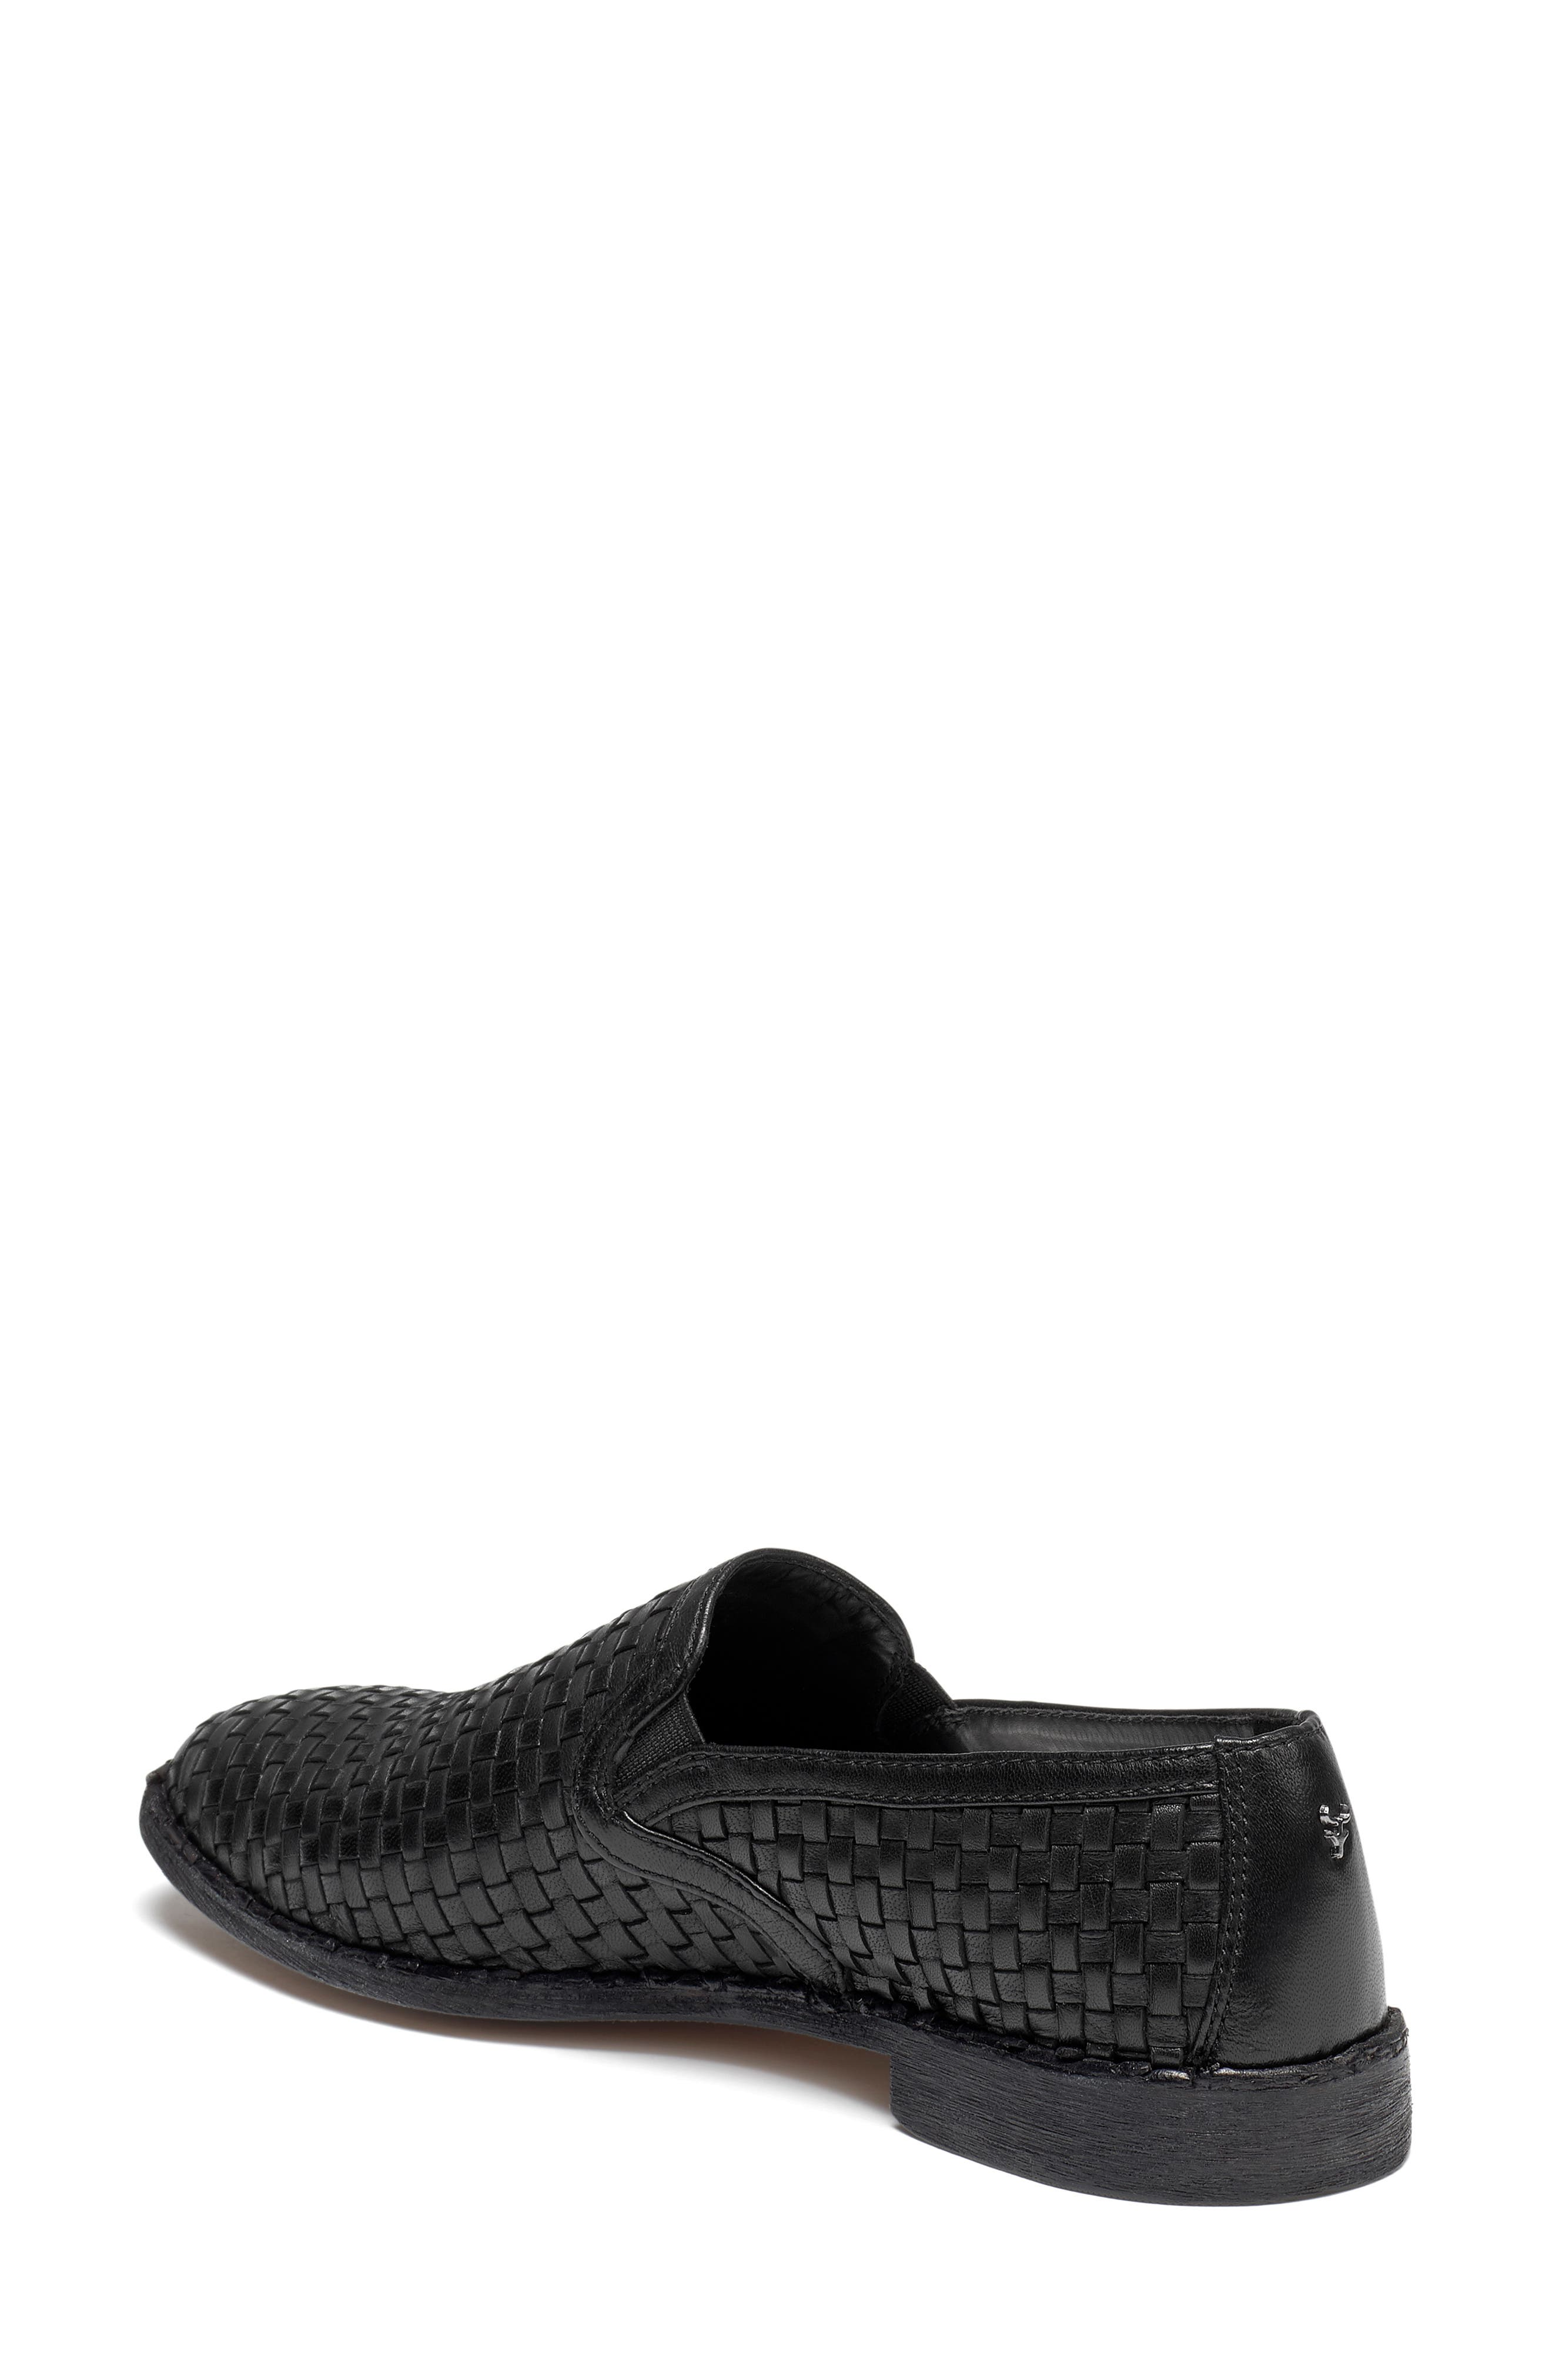 Amanda Woven Loafer,                             Alternate thumbnail 2, color,                             BLACK SUEDE